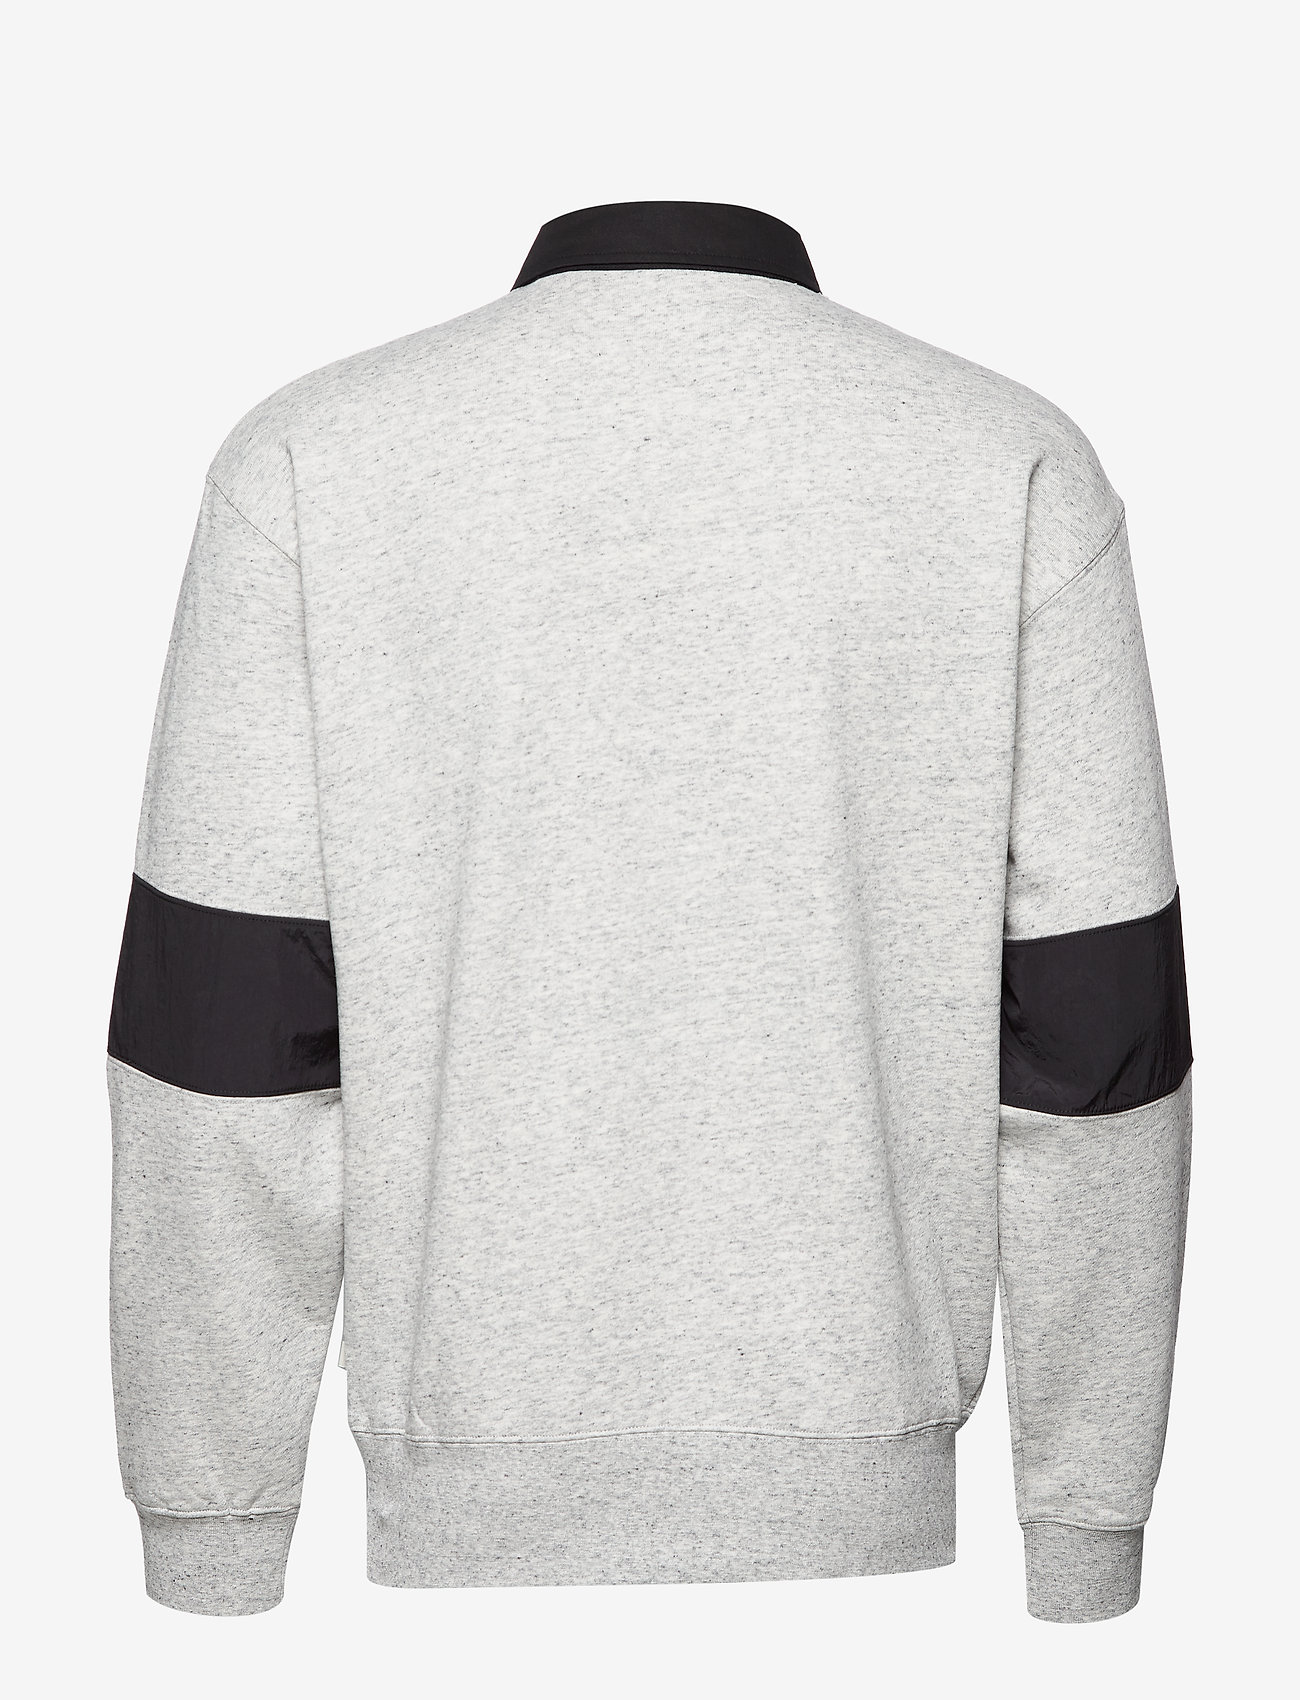 Scotch & Soda - Polo sweat with technical woven  details - polos à manches longues - light grey melange - 1